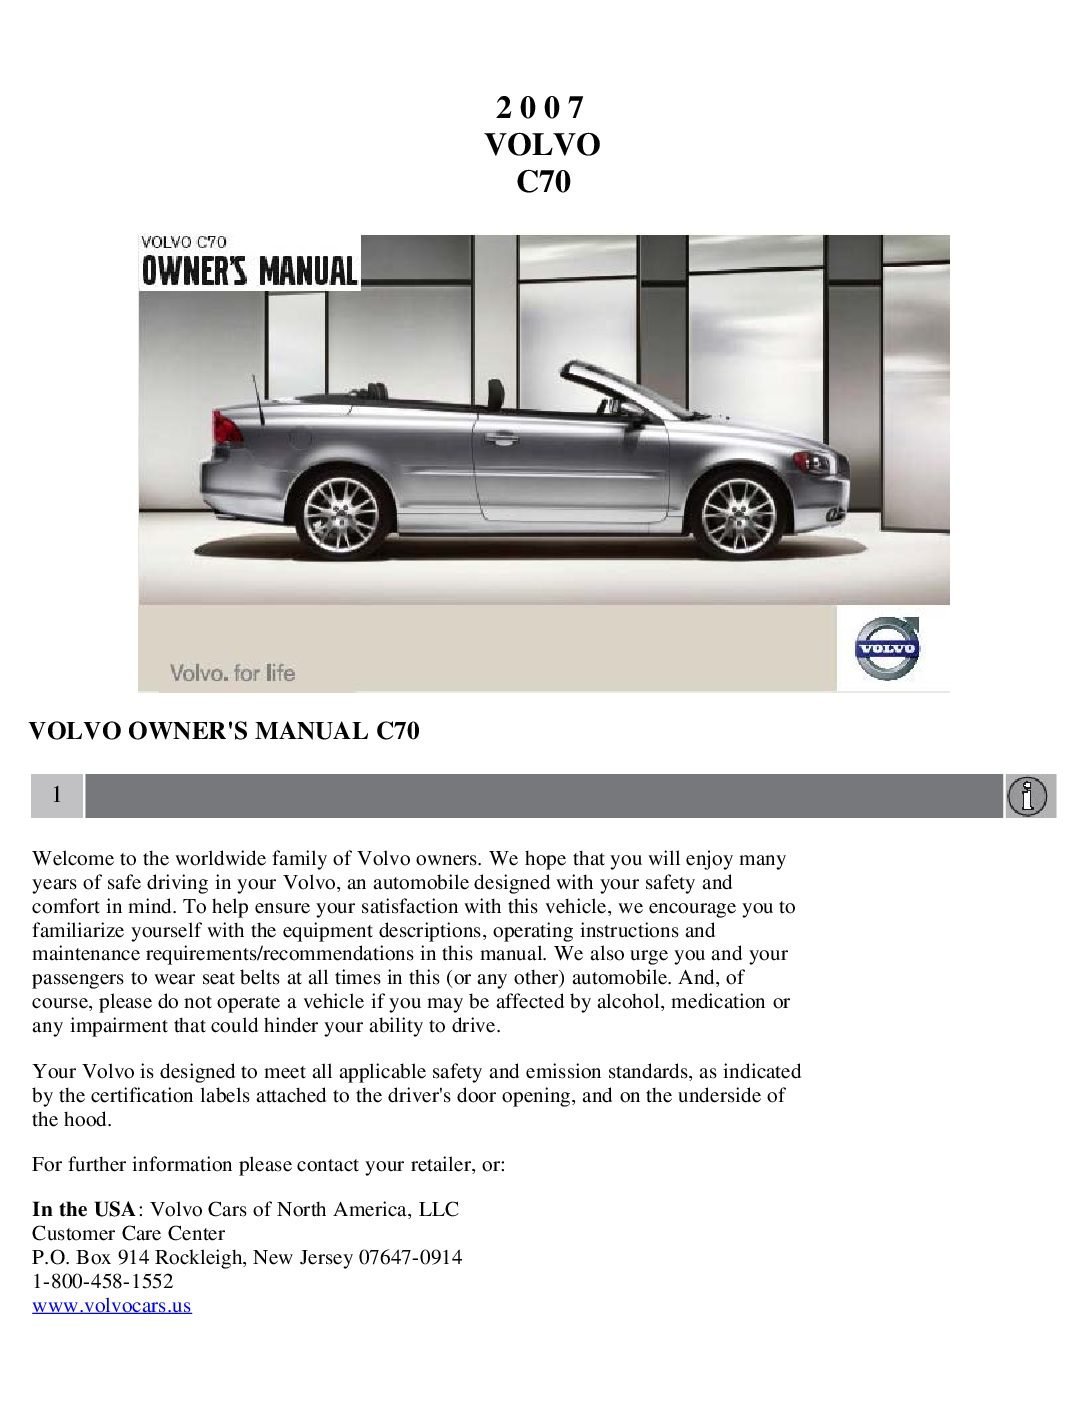 2010 volvo c70 owners manual